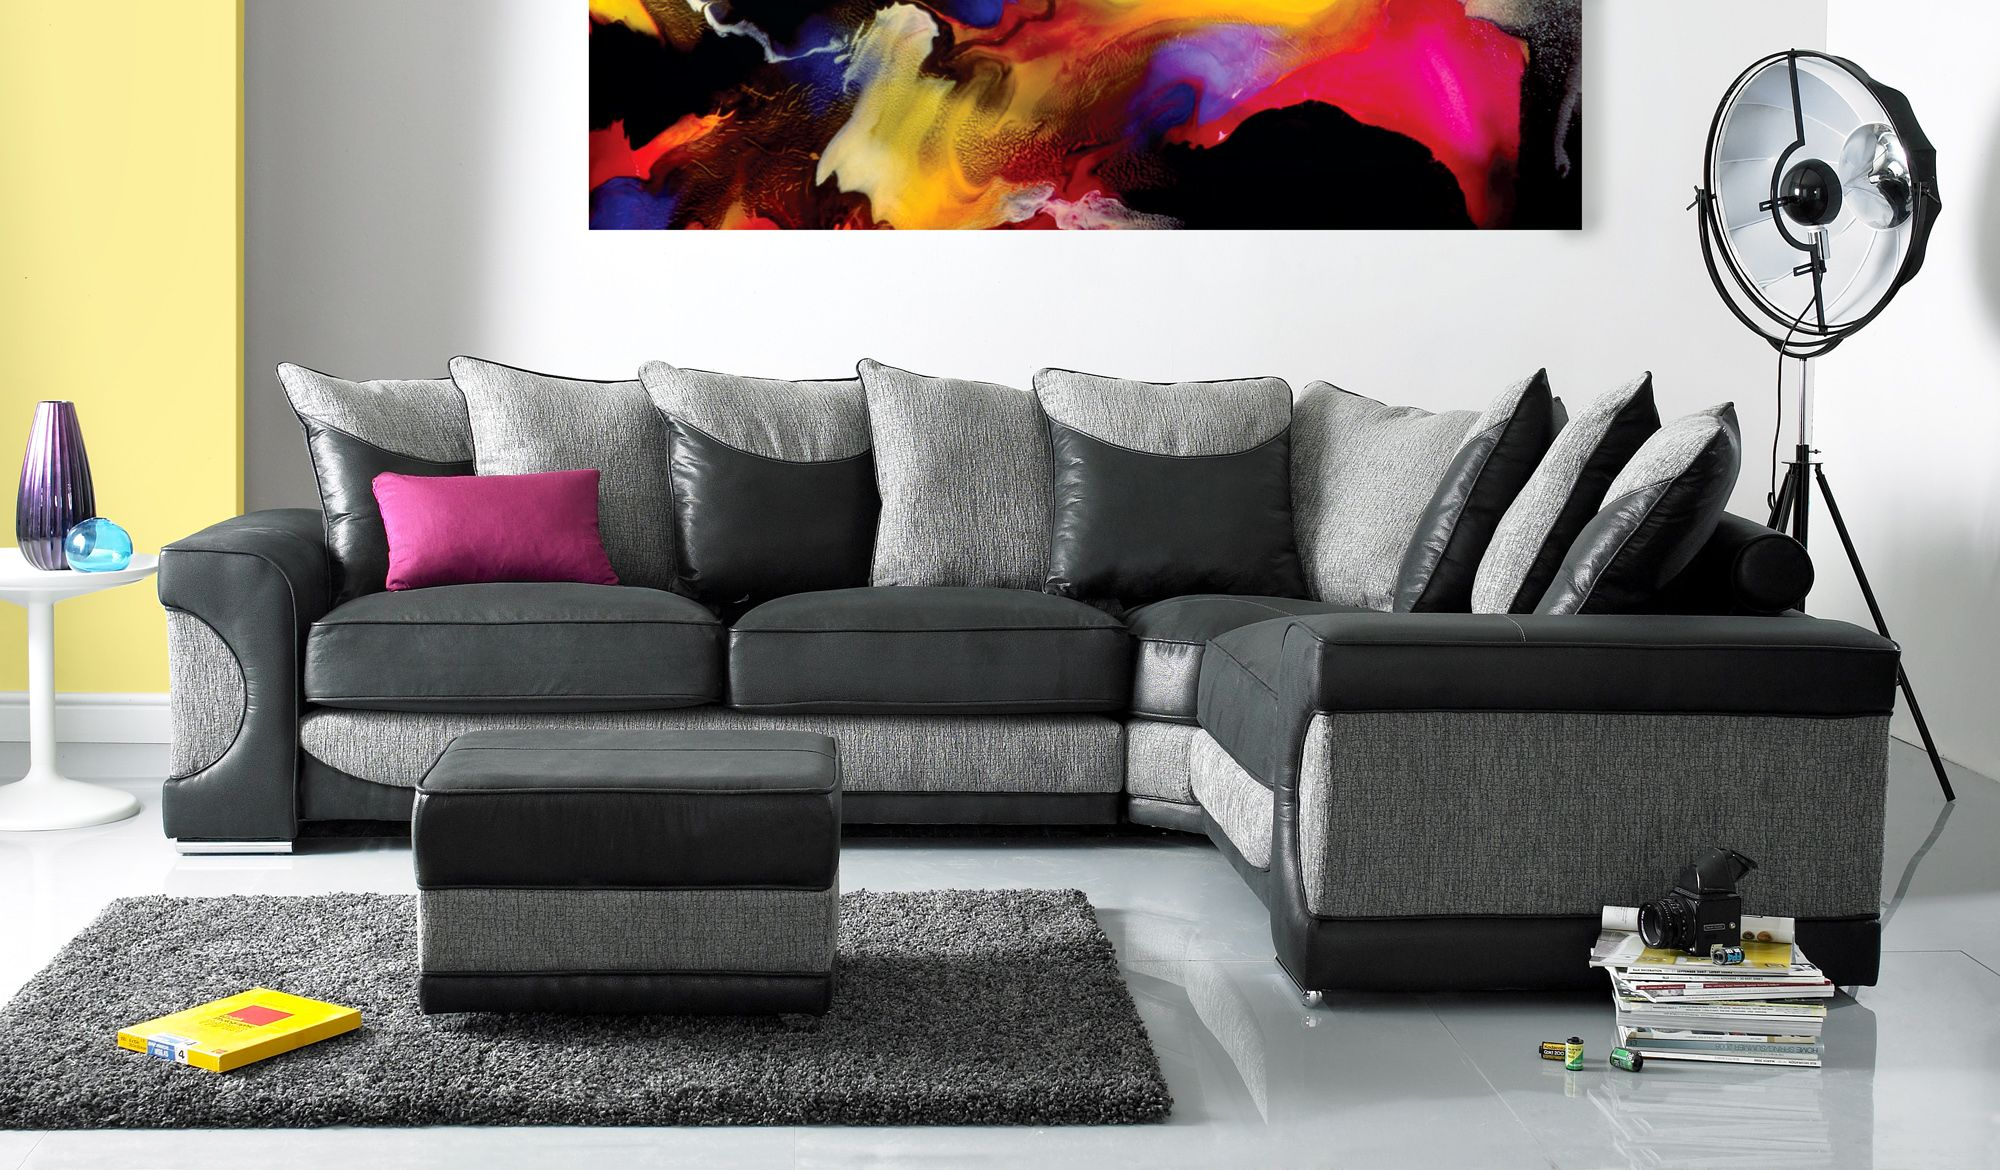 Check out the Halo sofa from Sofaworks New Lounge